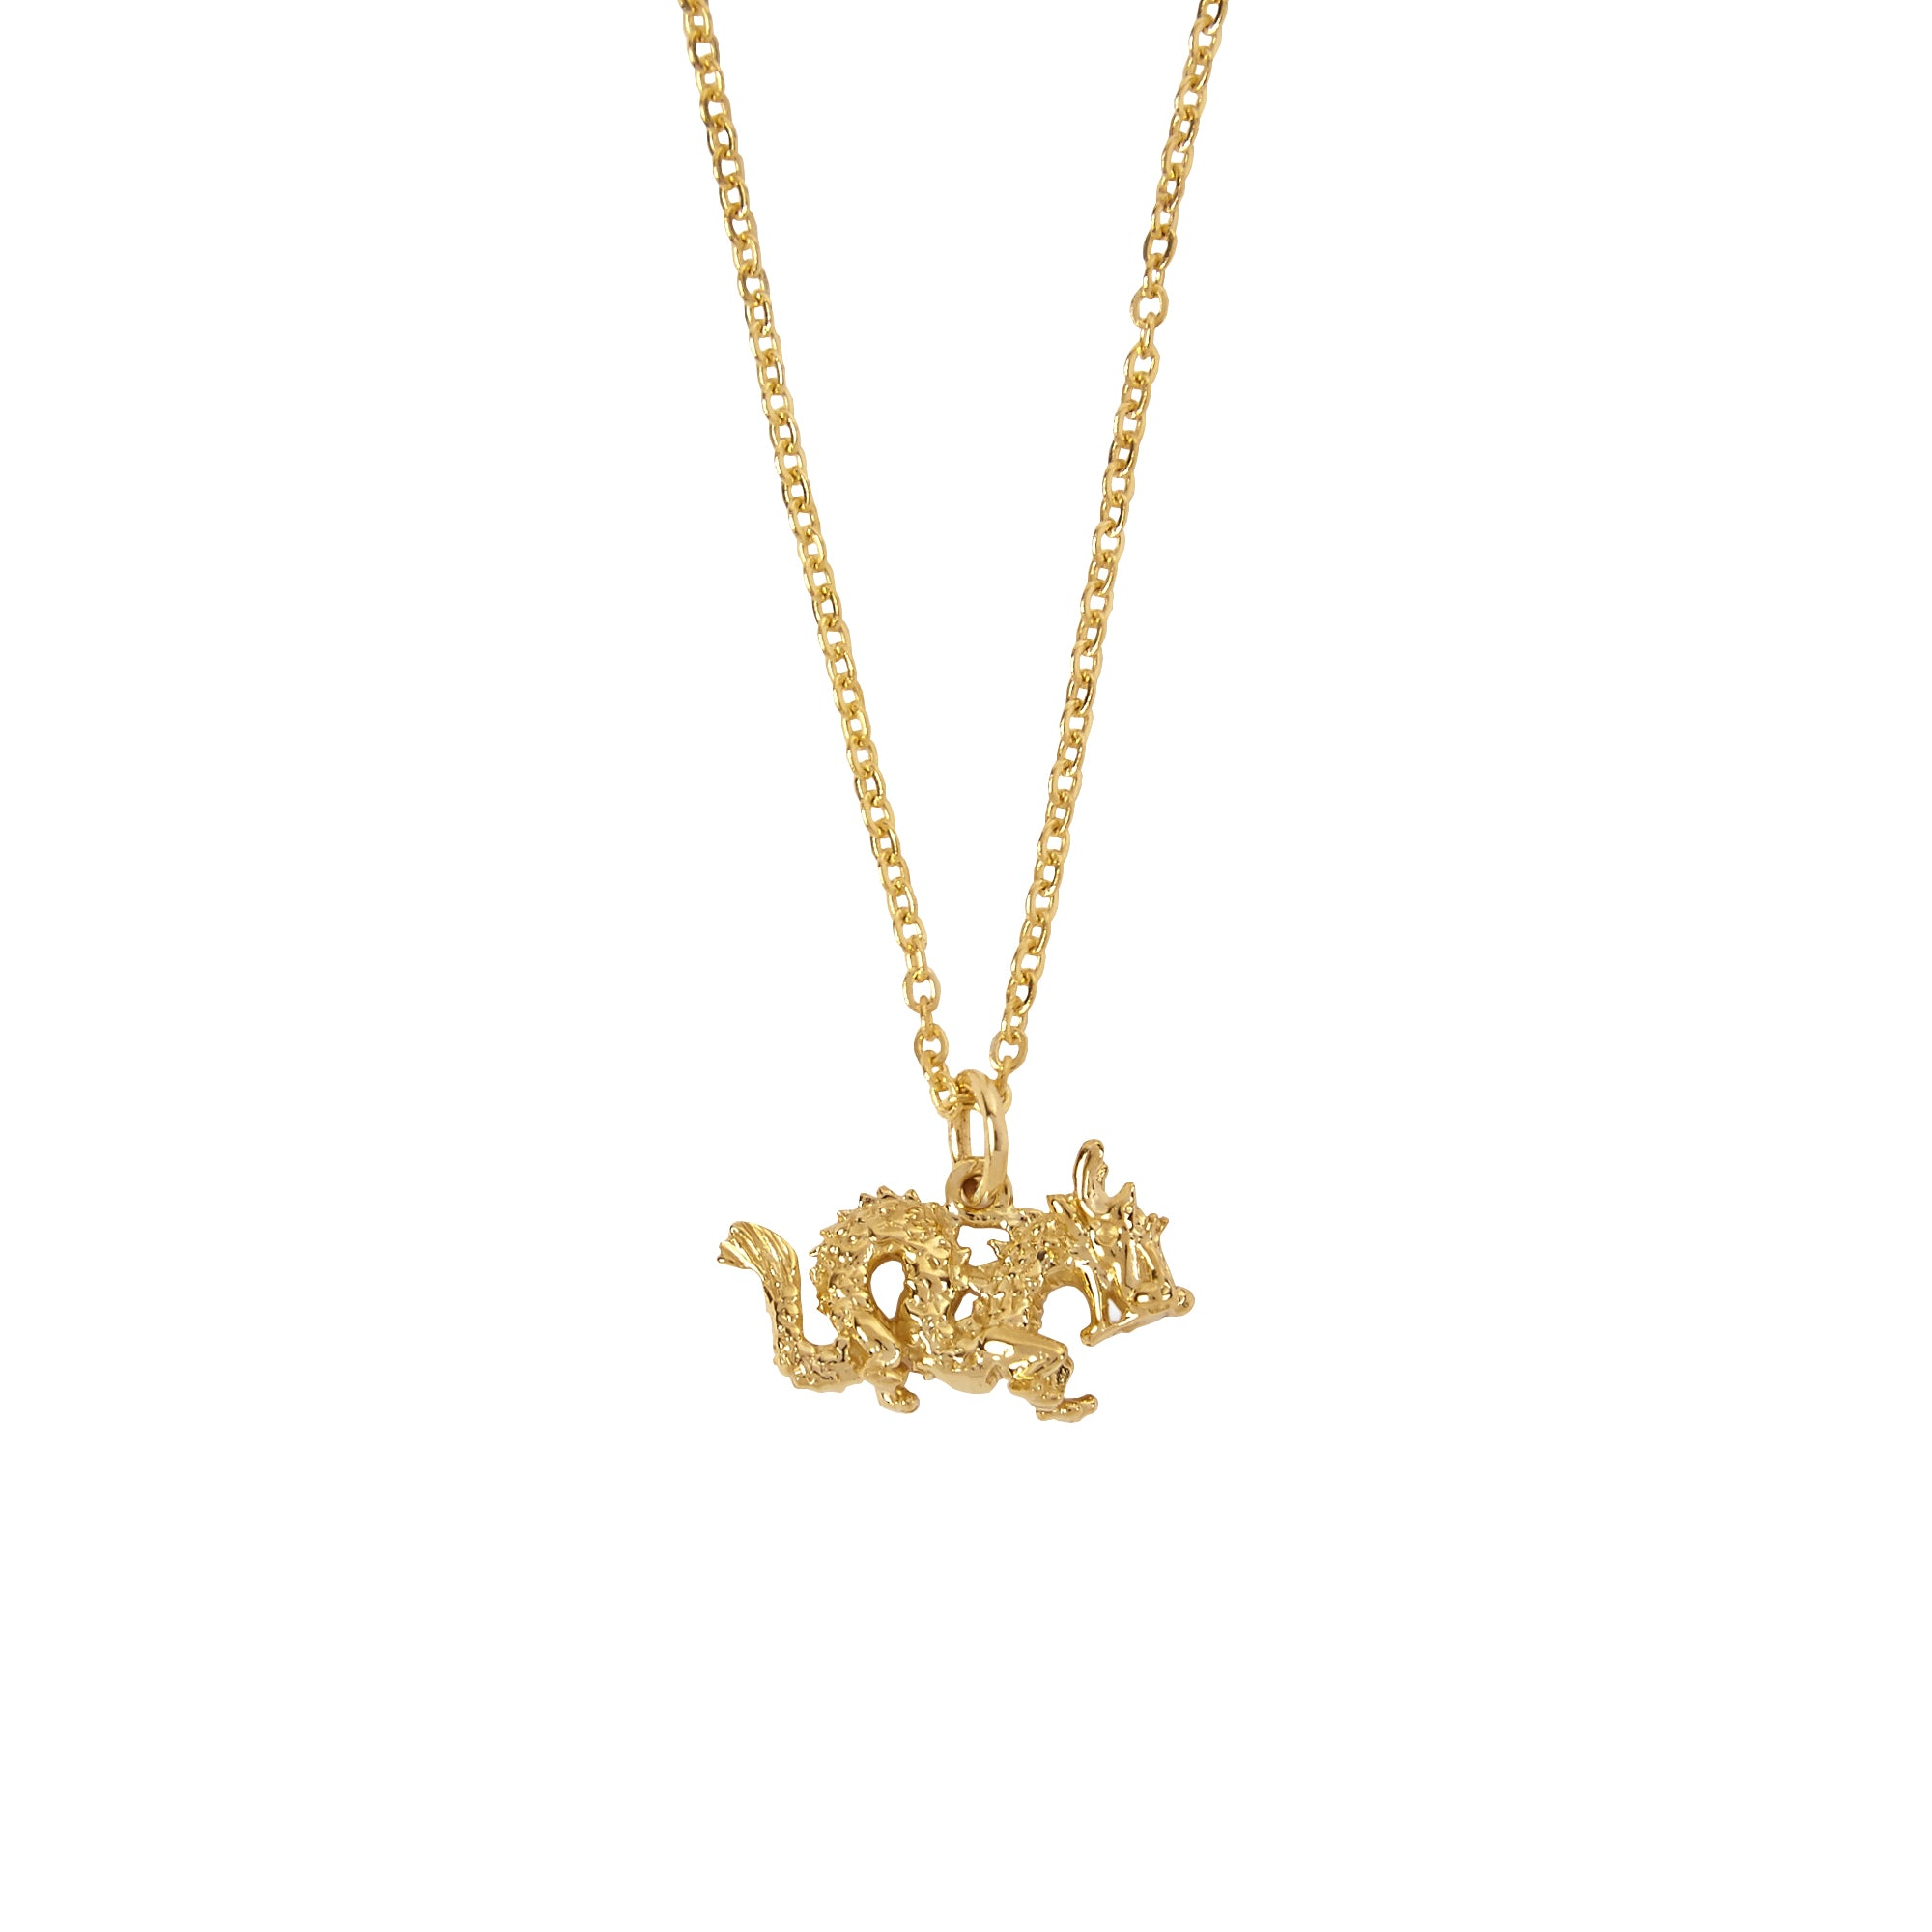 Patcharavipa Tiny Dragon Necklace - Necklaces - Broken English Jewelry